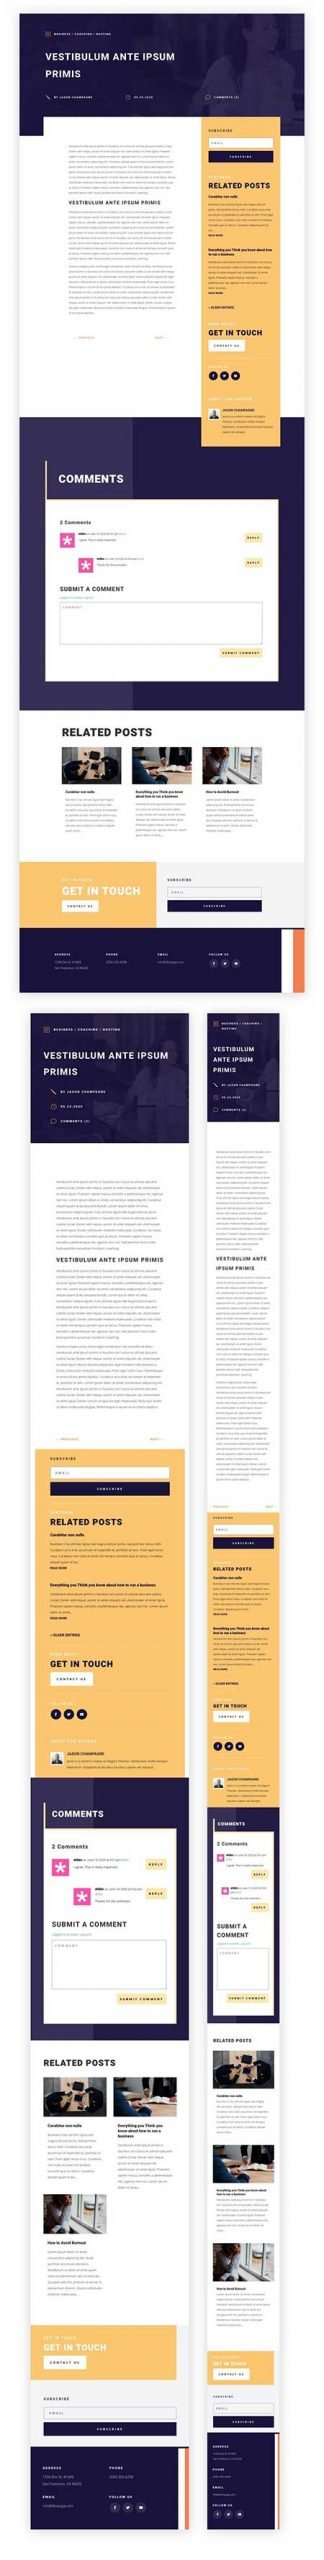 Divi PR firm blog post template